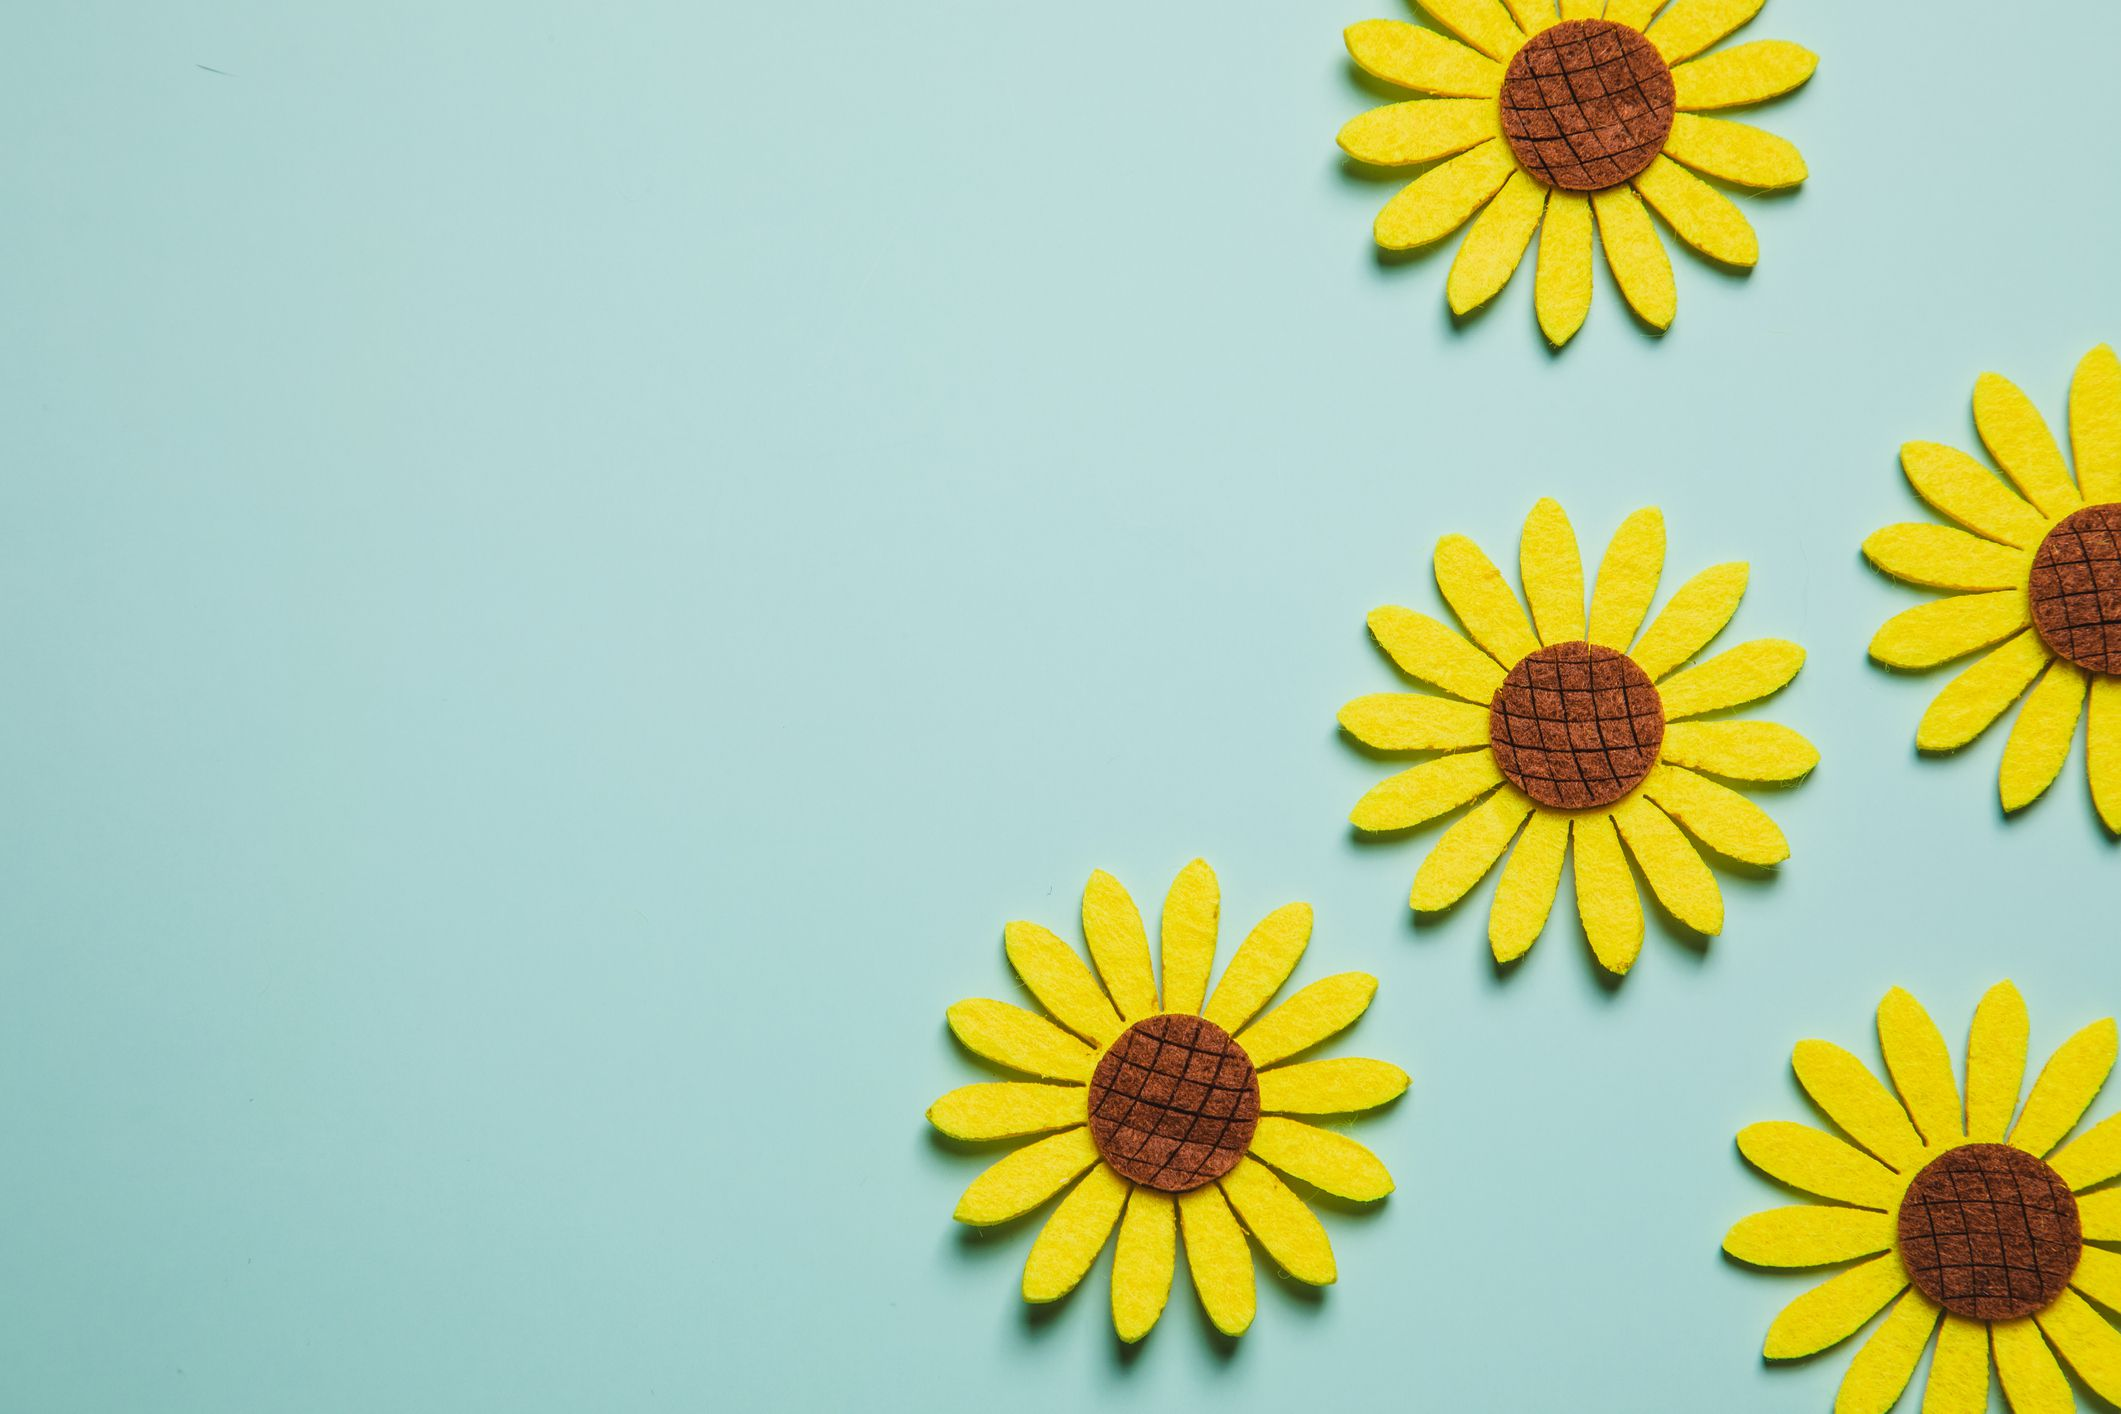 10 Sunflower Crafts For Kids